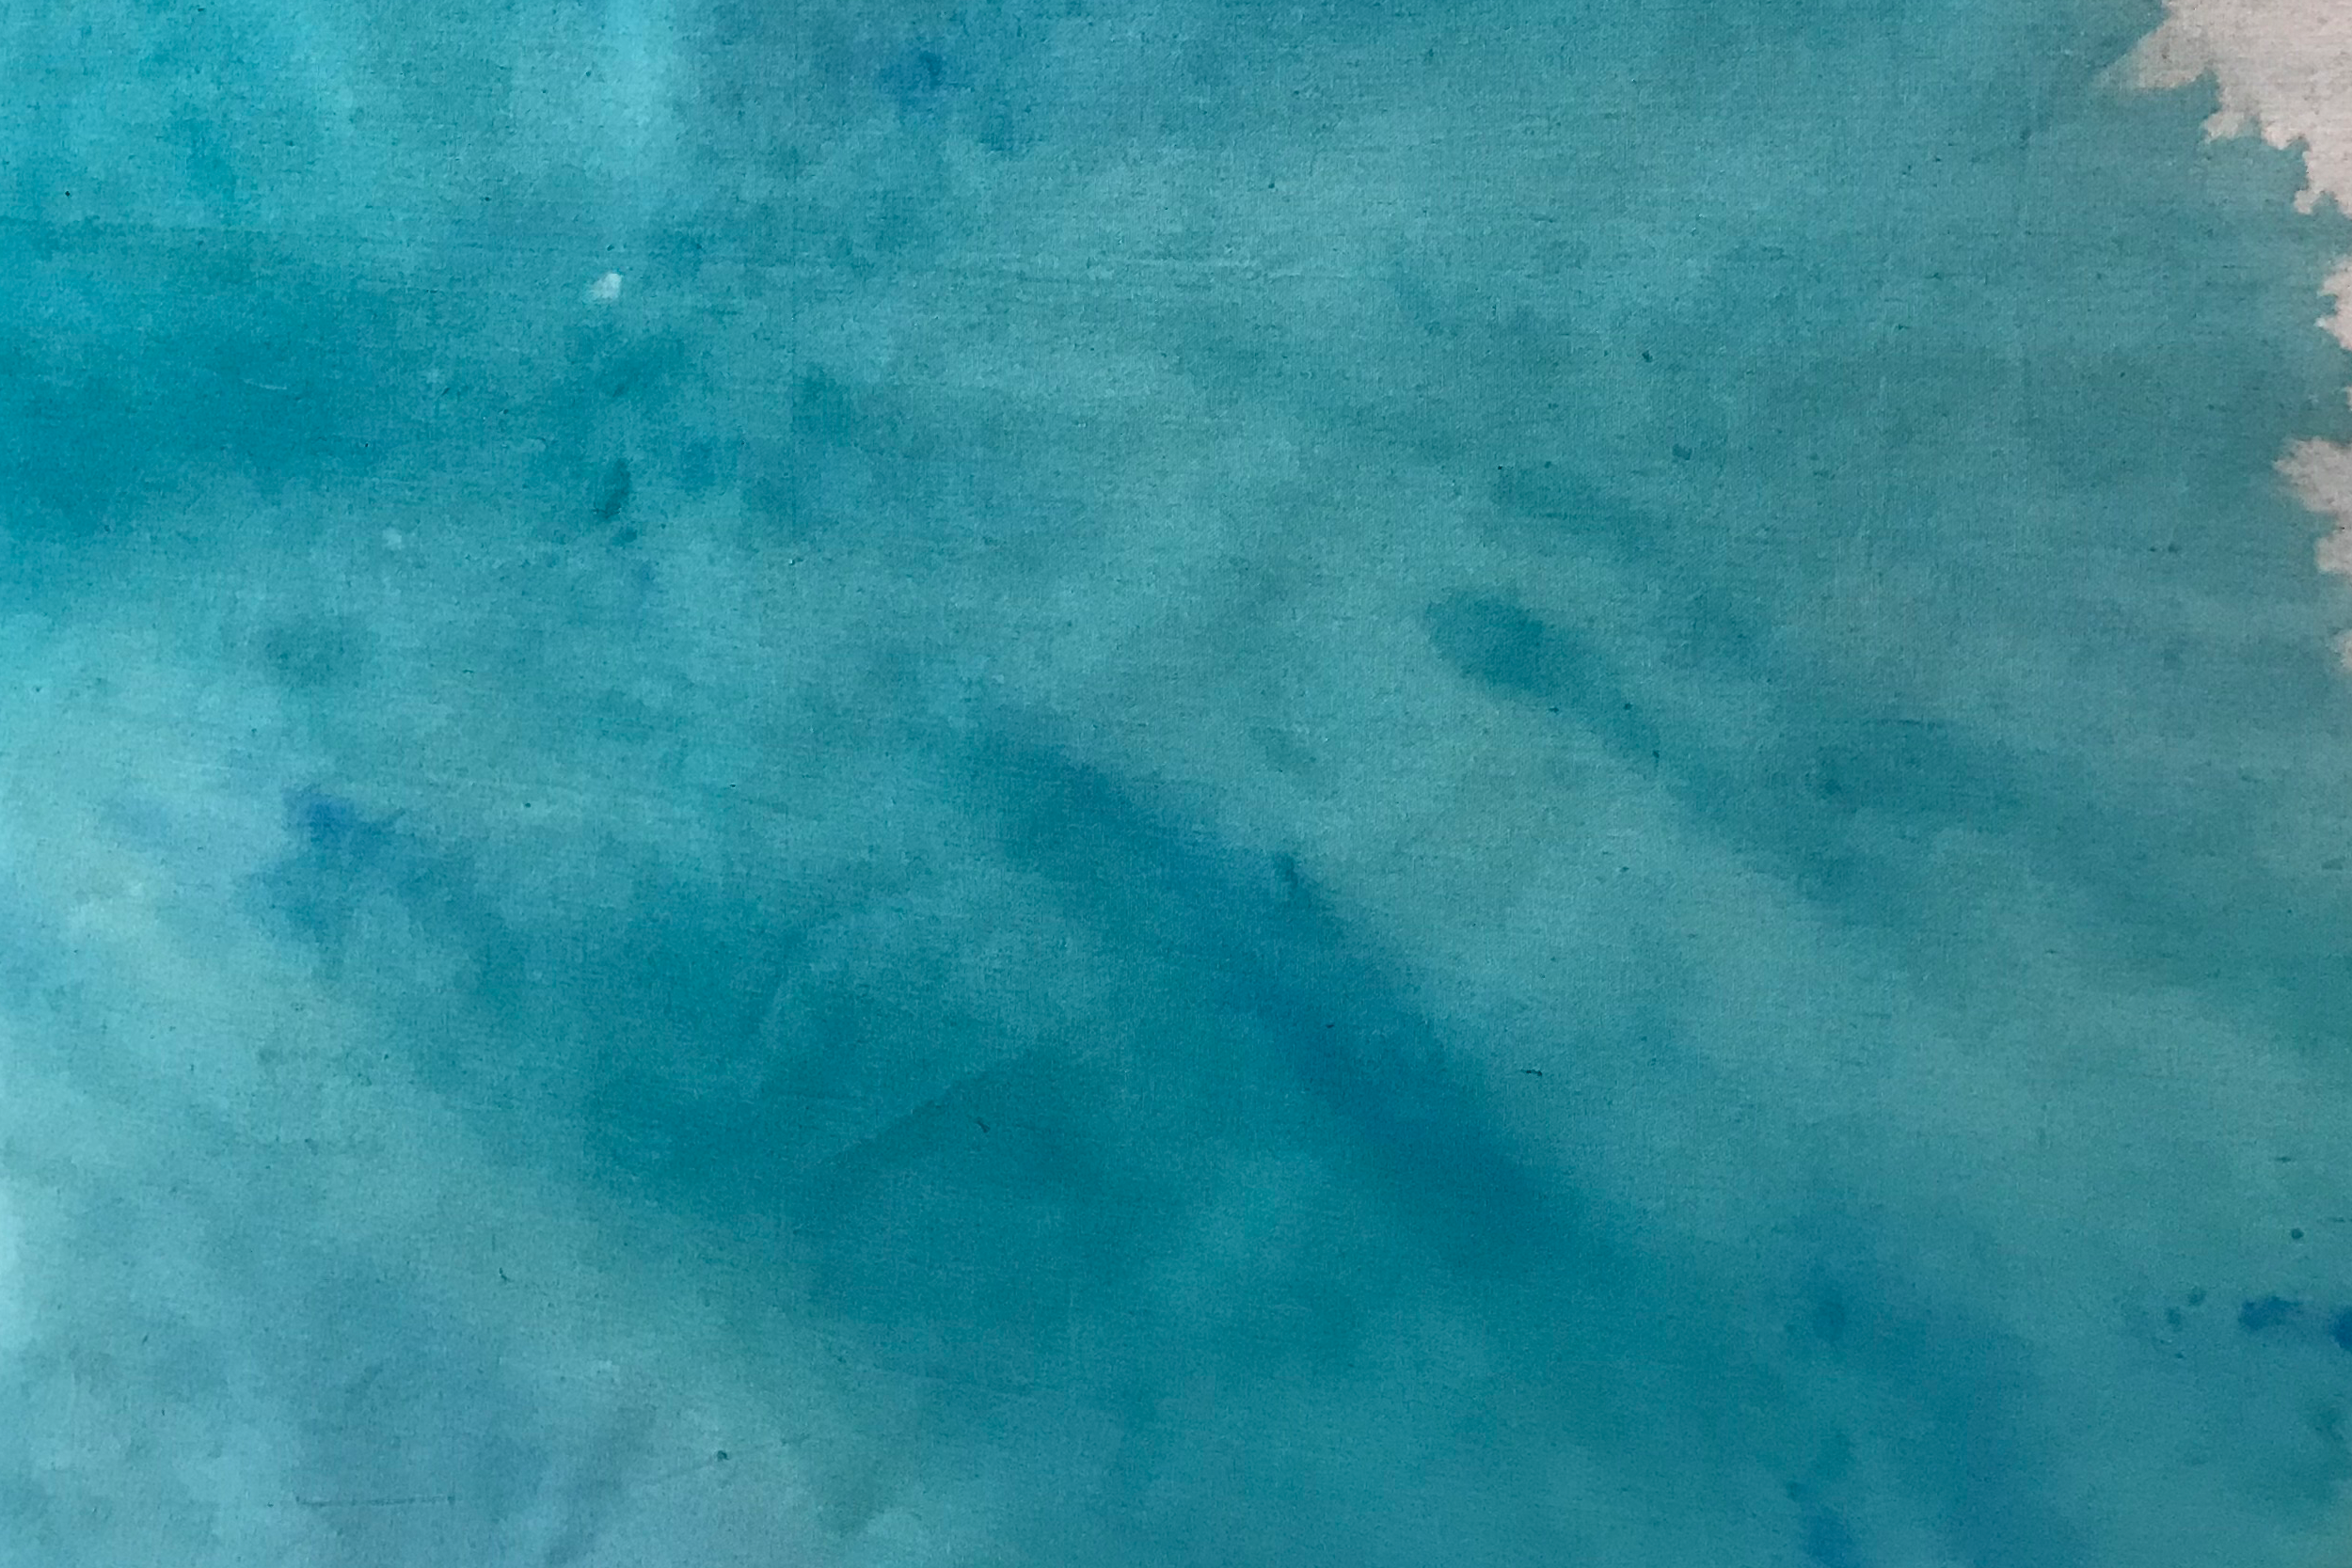 Painting.001